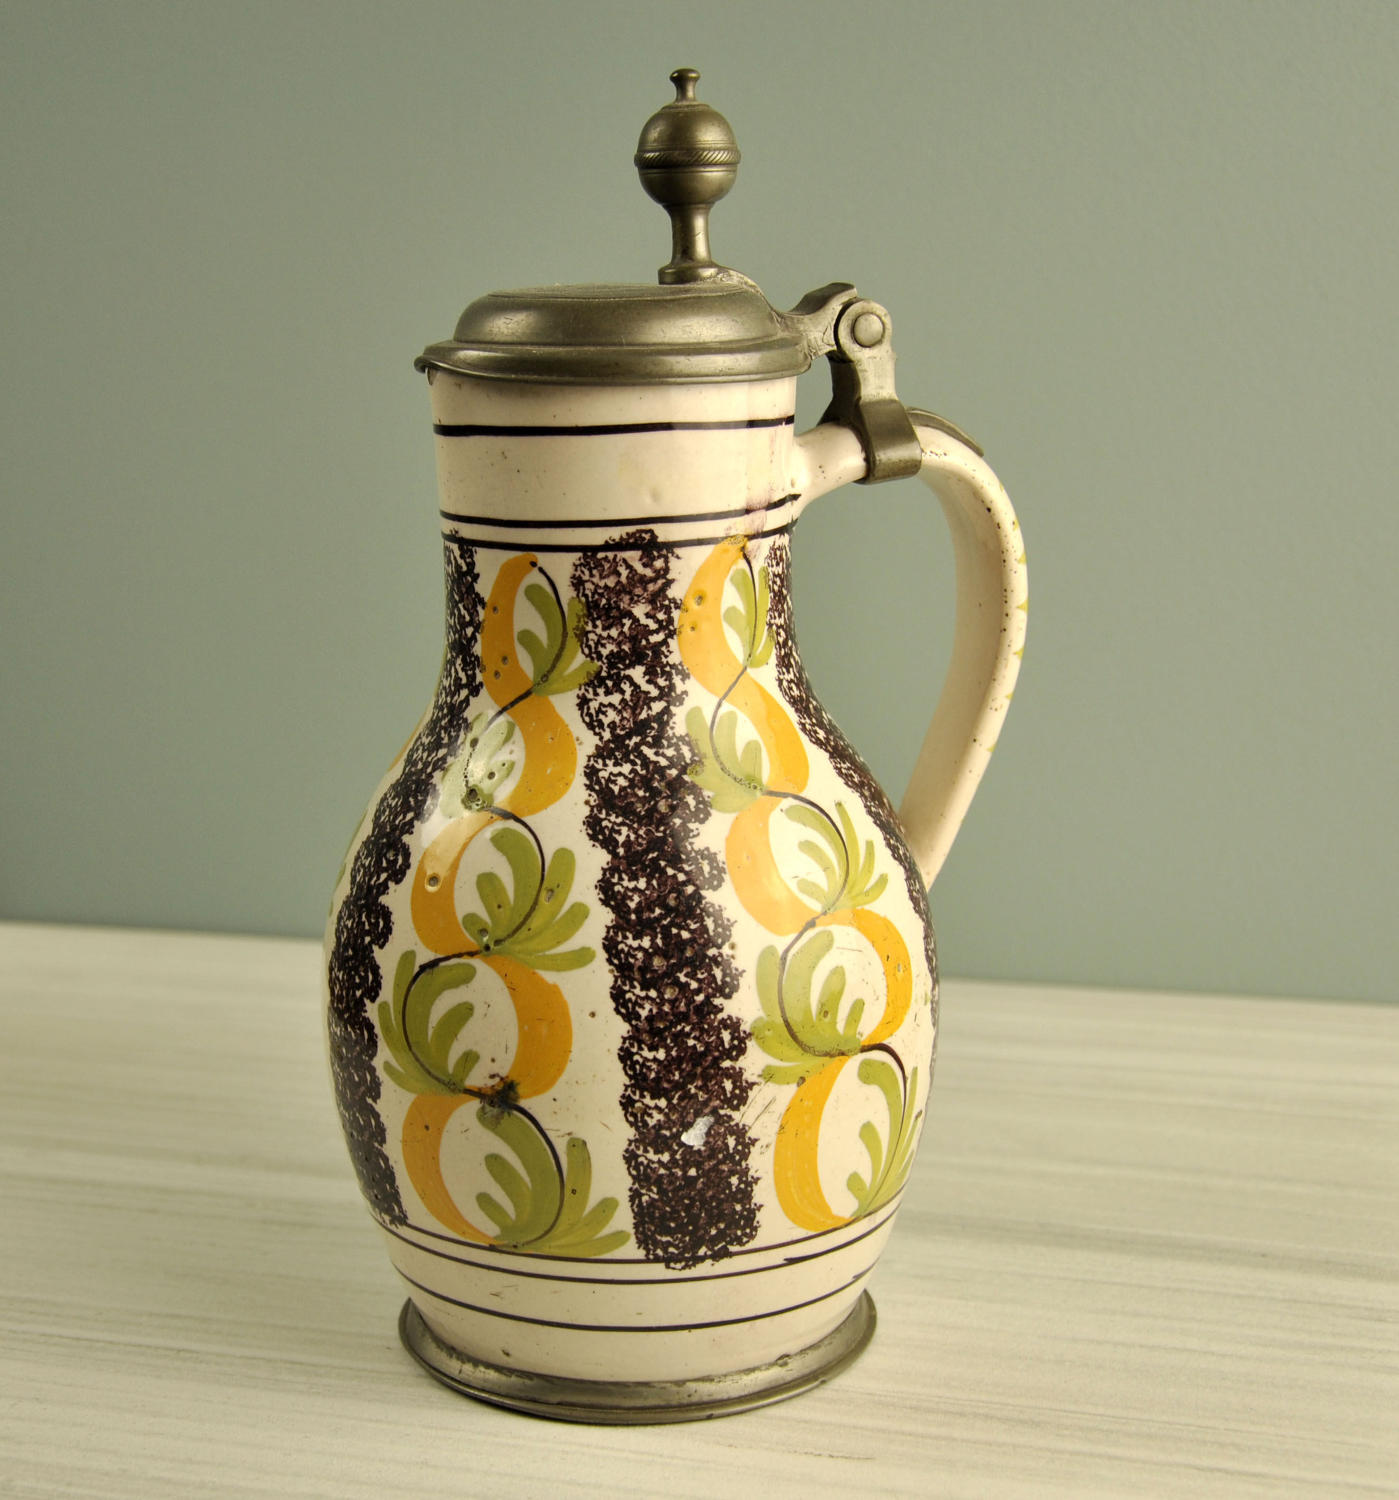 18th century French flagon